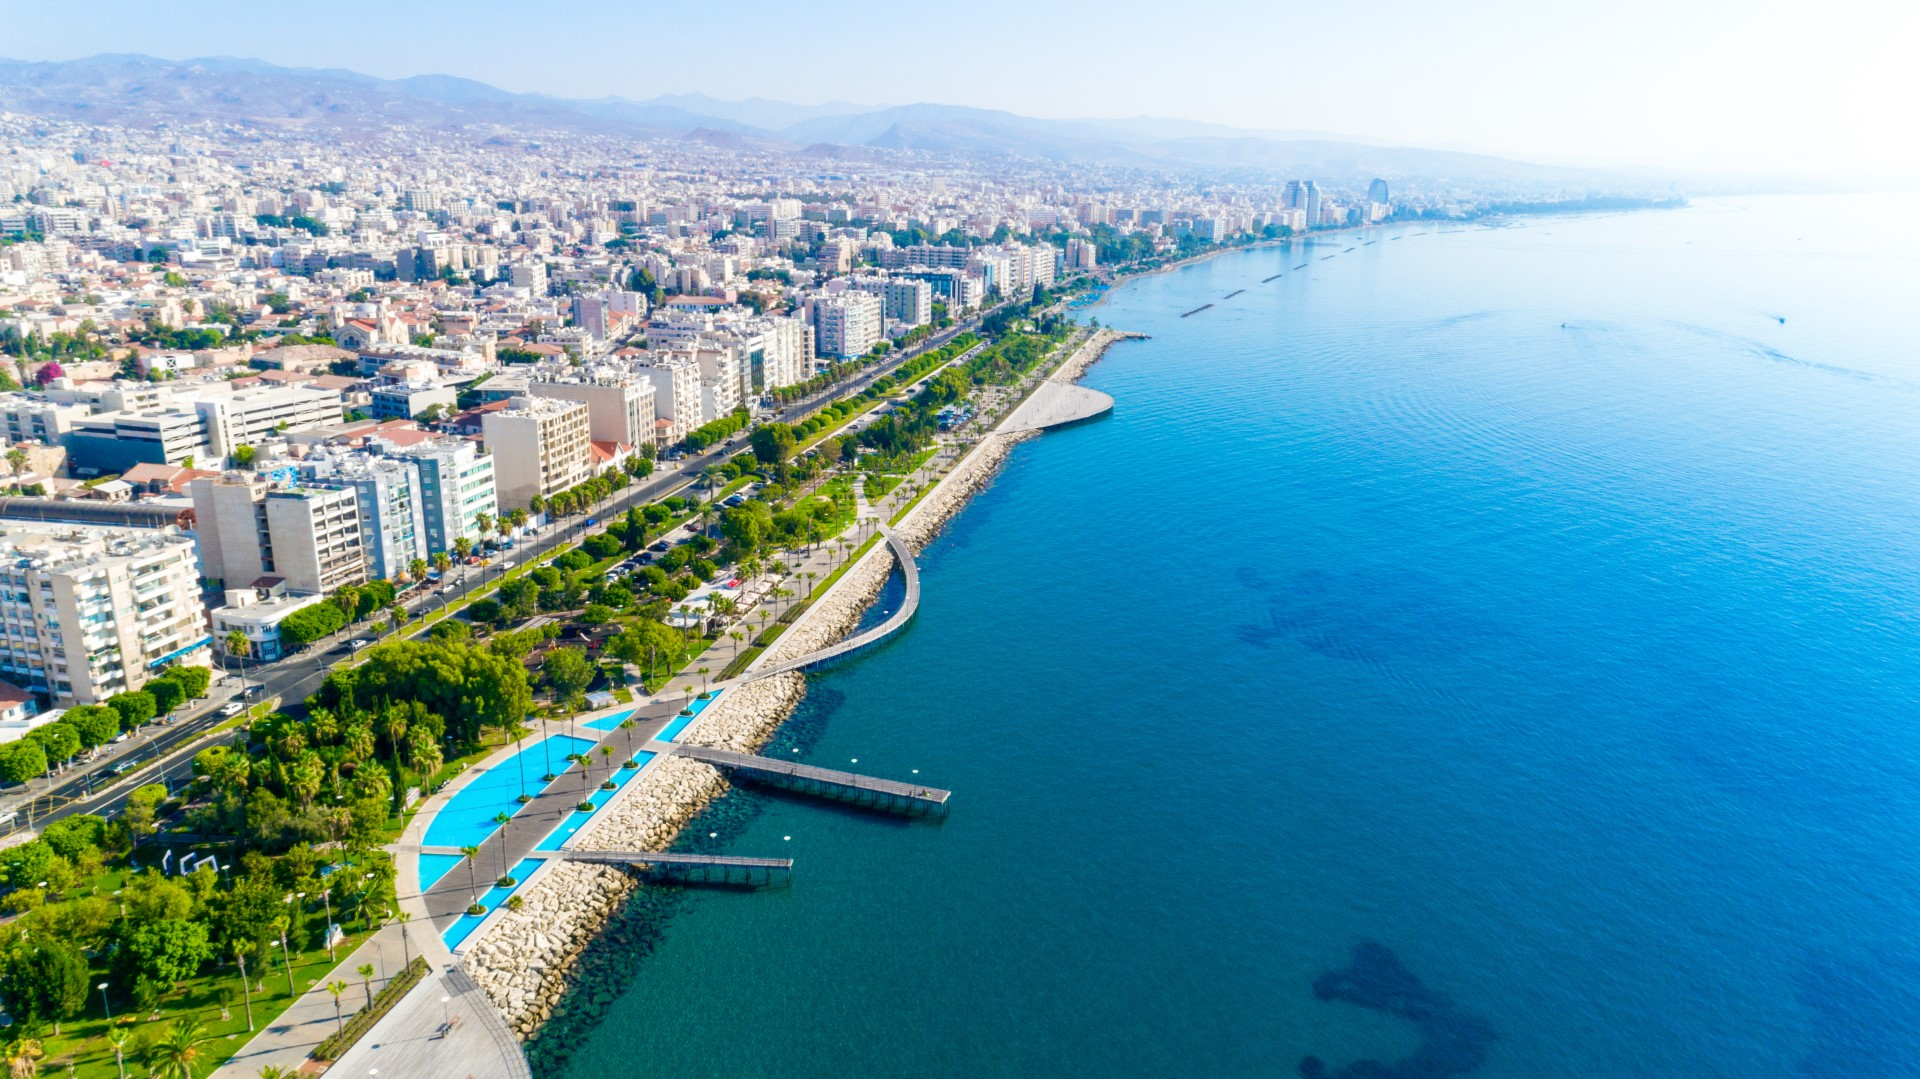 In 2020, Limassol is on the threshold of large-scale renovations